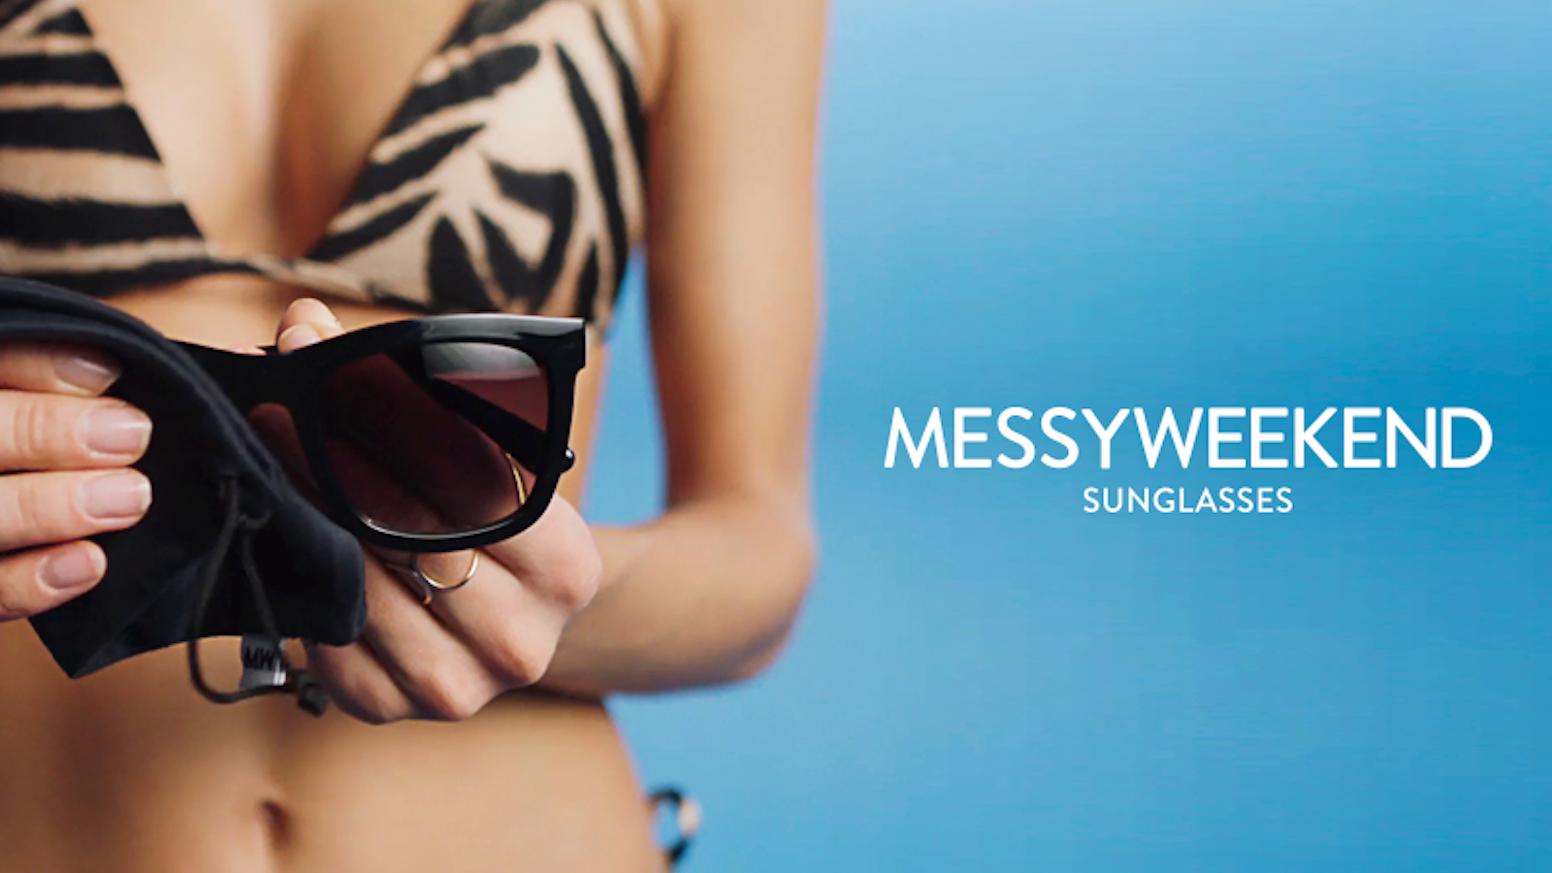 Quality designer sunglasses at extremely affordable prices - Live like everyday is the weekend!